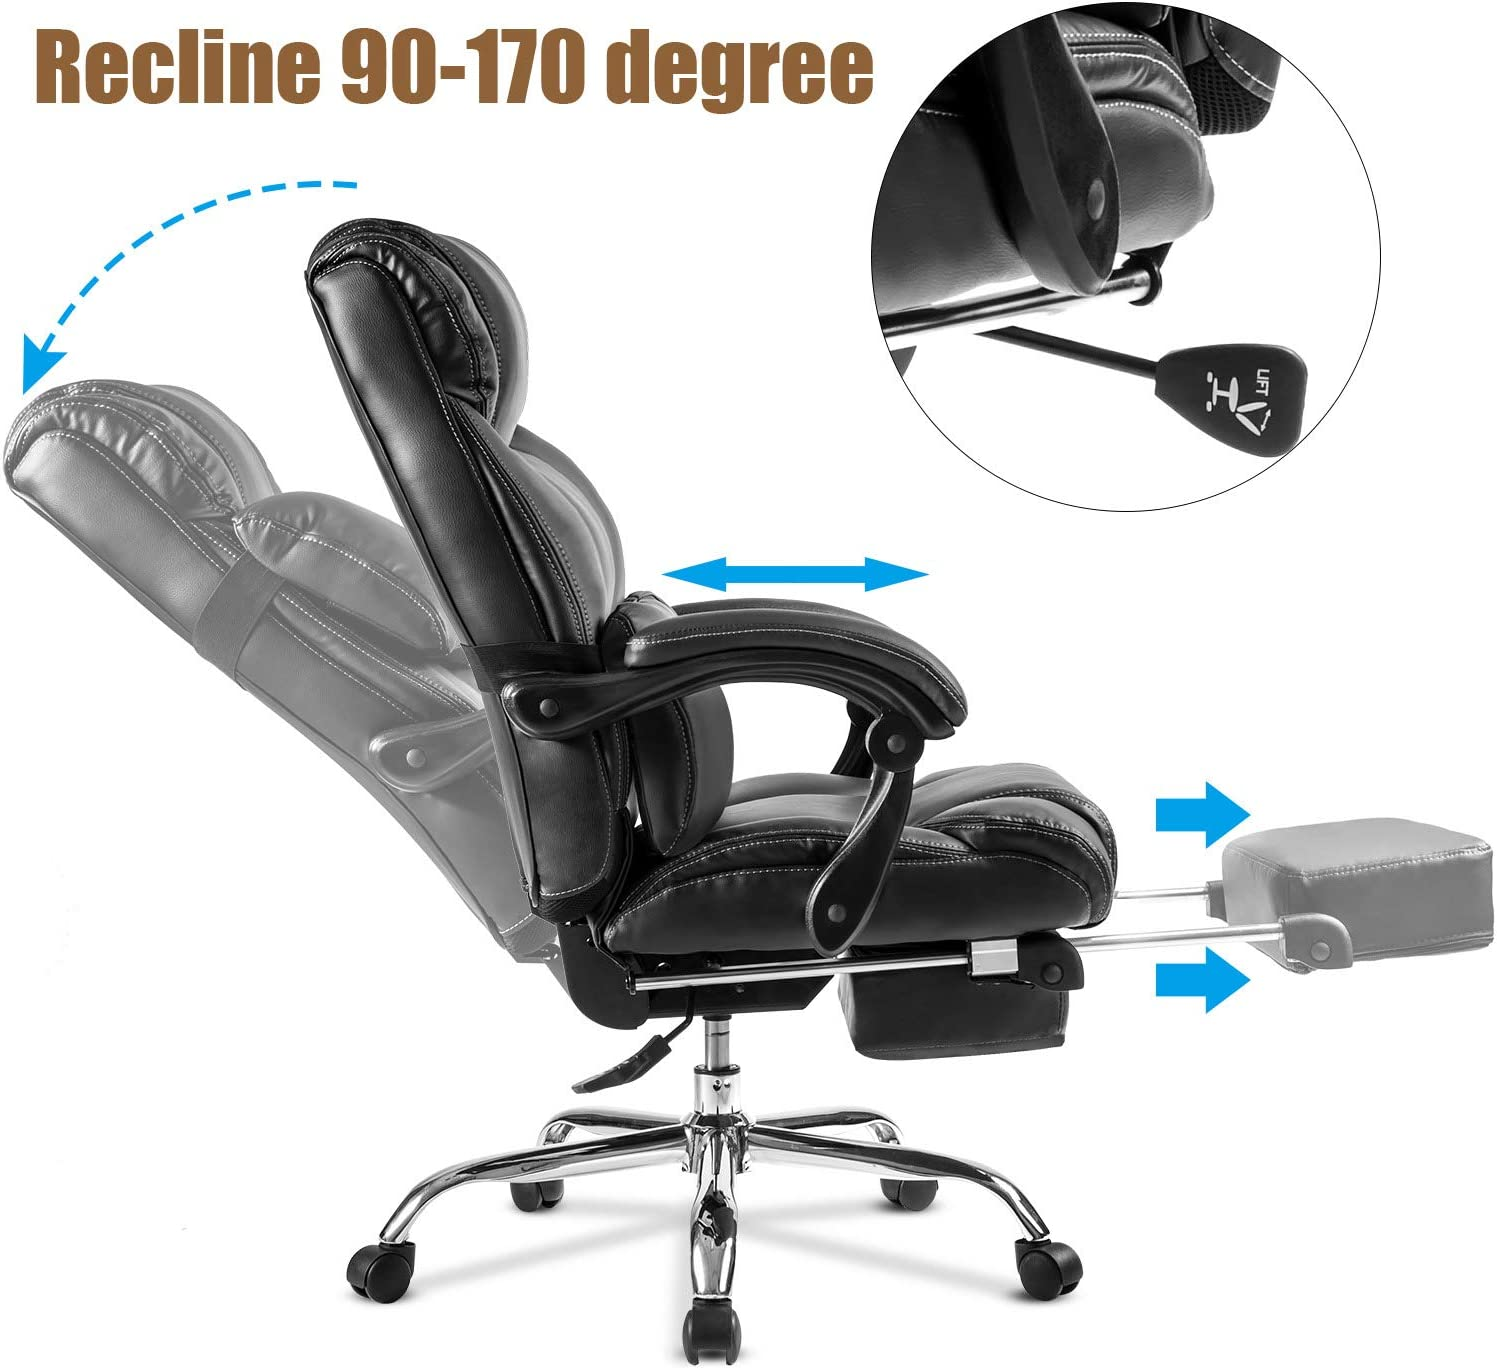 Amazon Com Merax Racing Gaming Chair With Footrest Ergonomic Office Reclining Chair Computer Gamers Pc Racer High Back Large Home Desk Chairs Executive Adjustable Armrests And Comfortable Seat All Black Kitchen